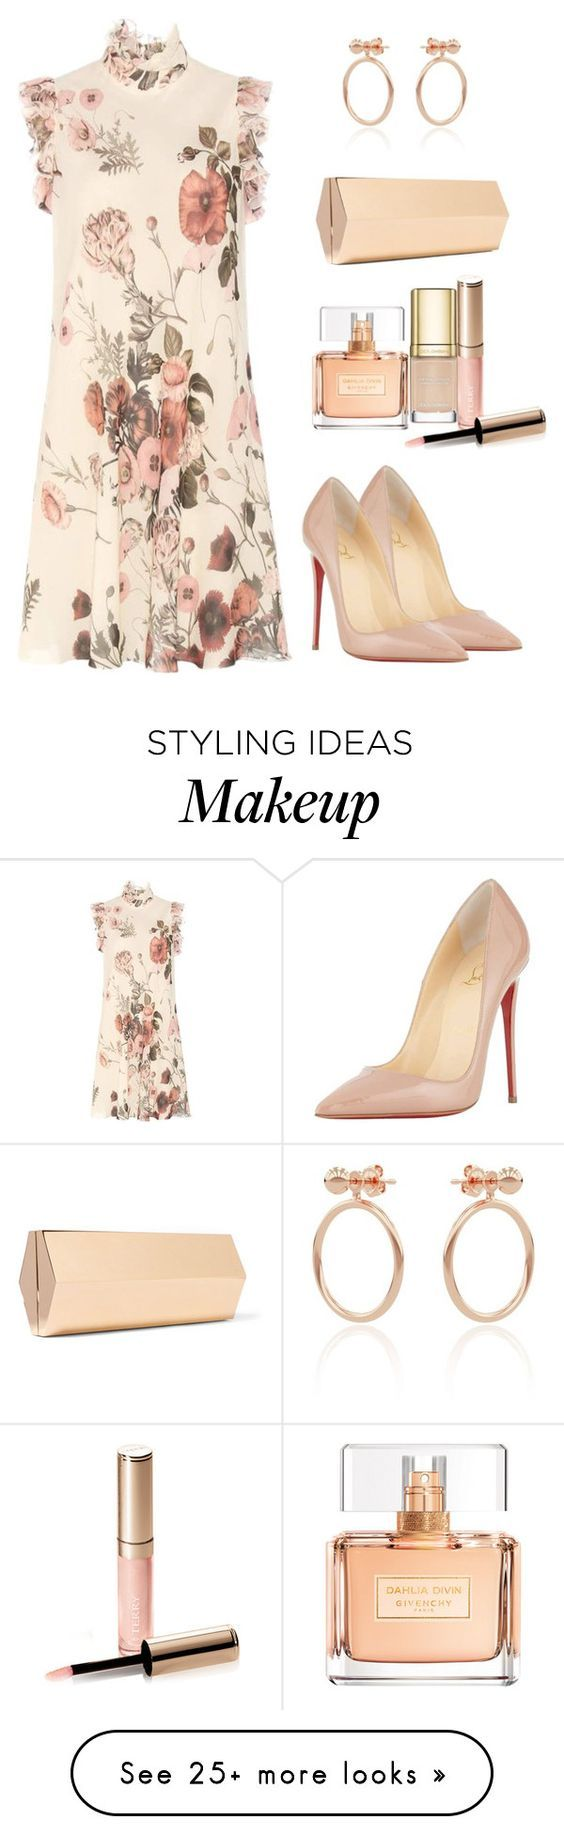 """Untitled #688"" by styledbyhkc on Polyvore featuring Giambattista Valli, Lee Savage, Smith/Grey, Christian Louboutin, Givenchy, Dolce&Gabbana and By Terry"